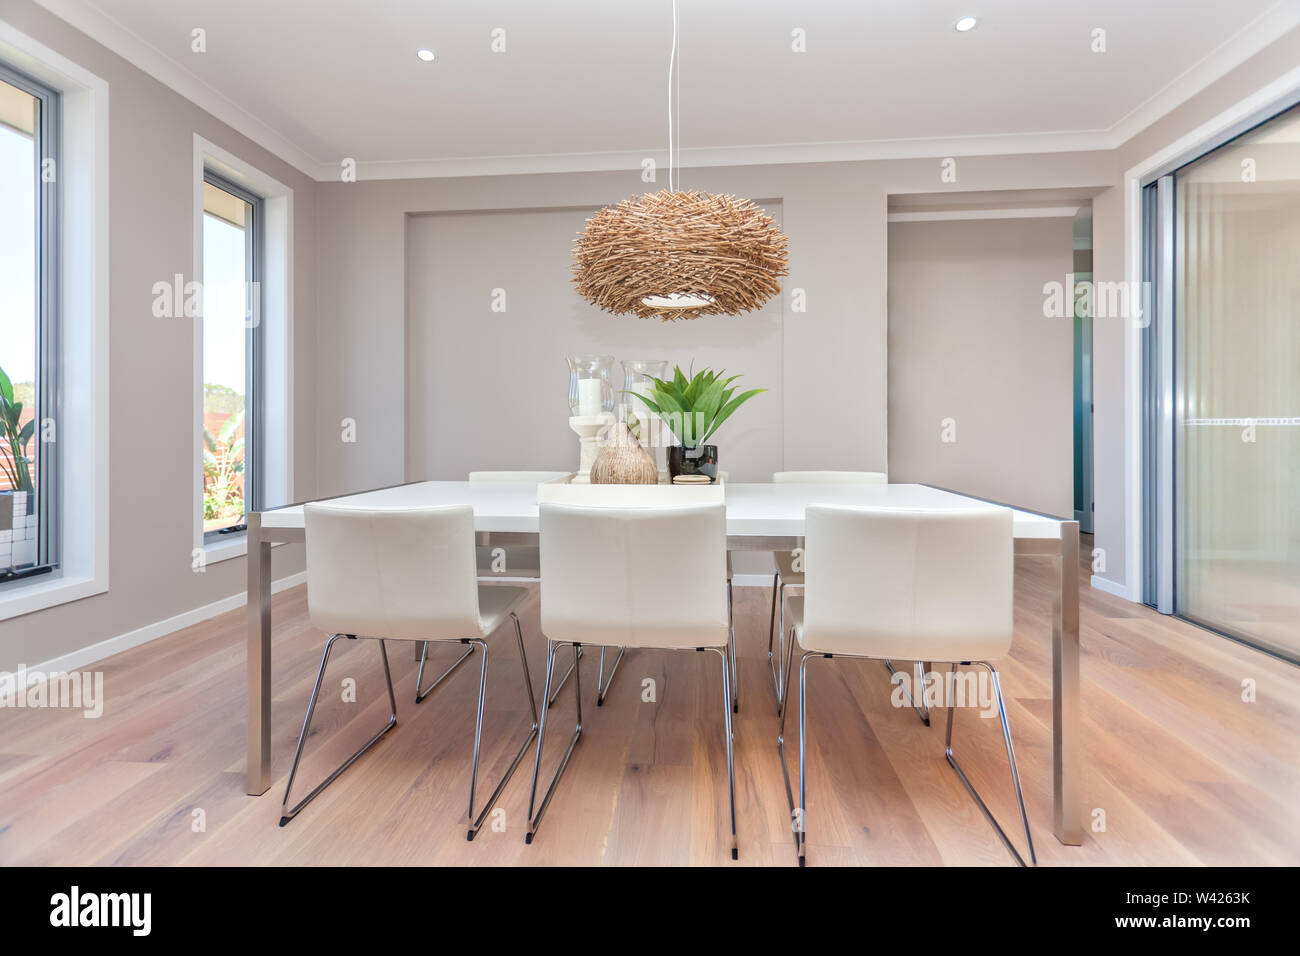 Luxury Dining Room And A Light Color Wooden Floor And Gray Walls With Two Windows Around The Area Except Right Side Glass Door And Entrance Is Next To Stock Photo Alamy